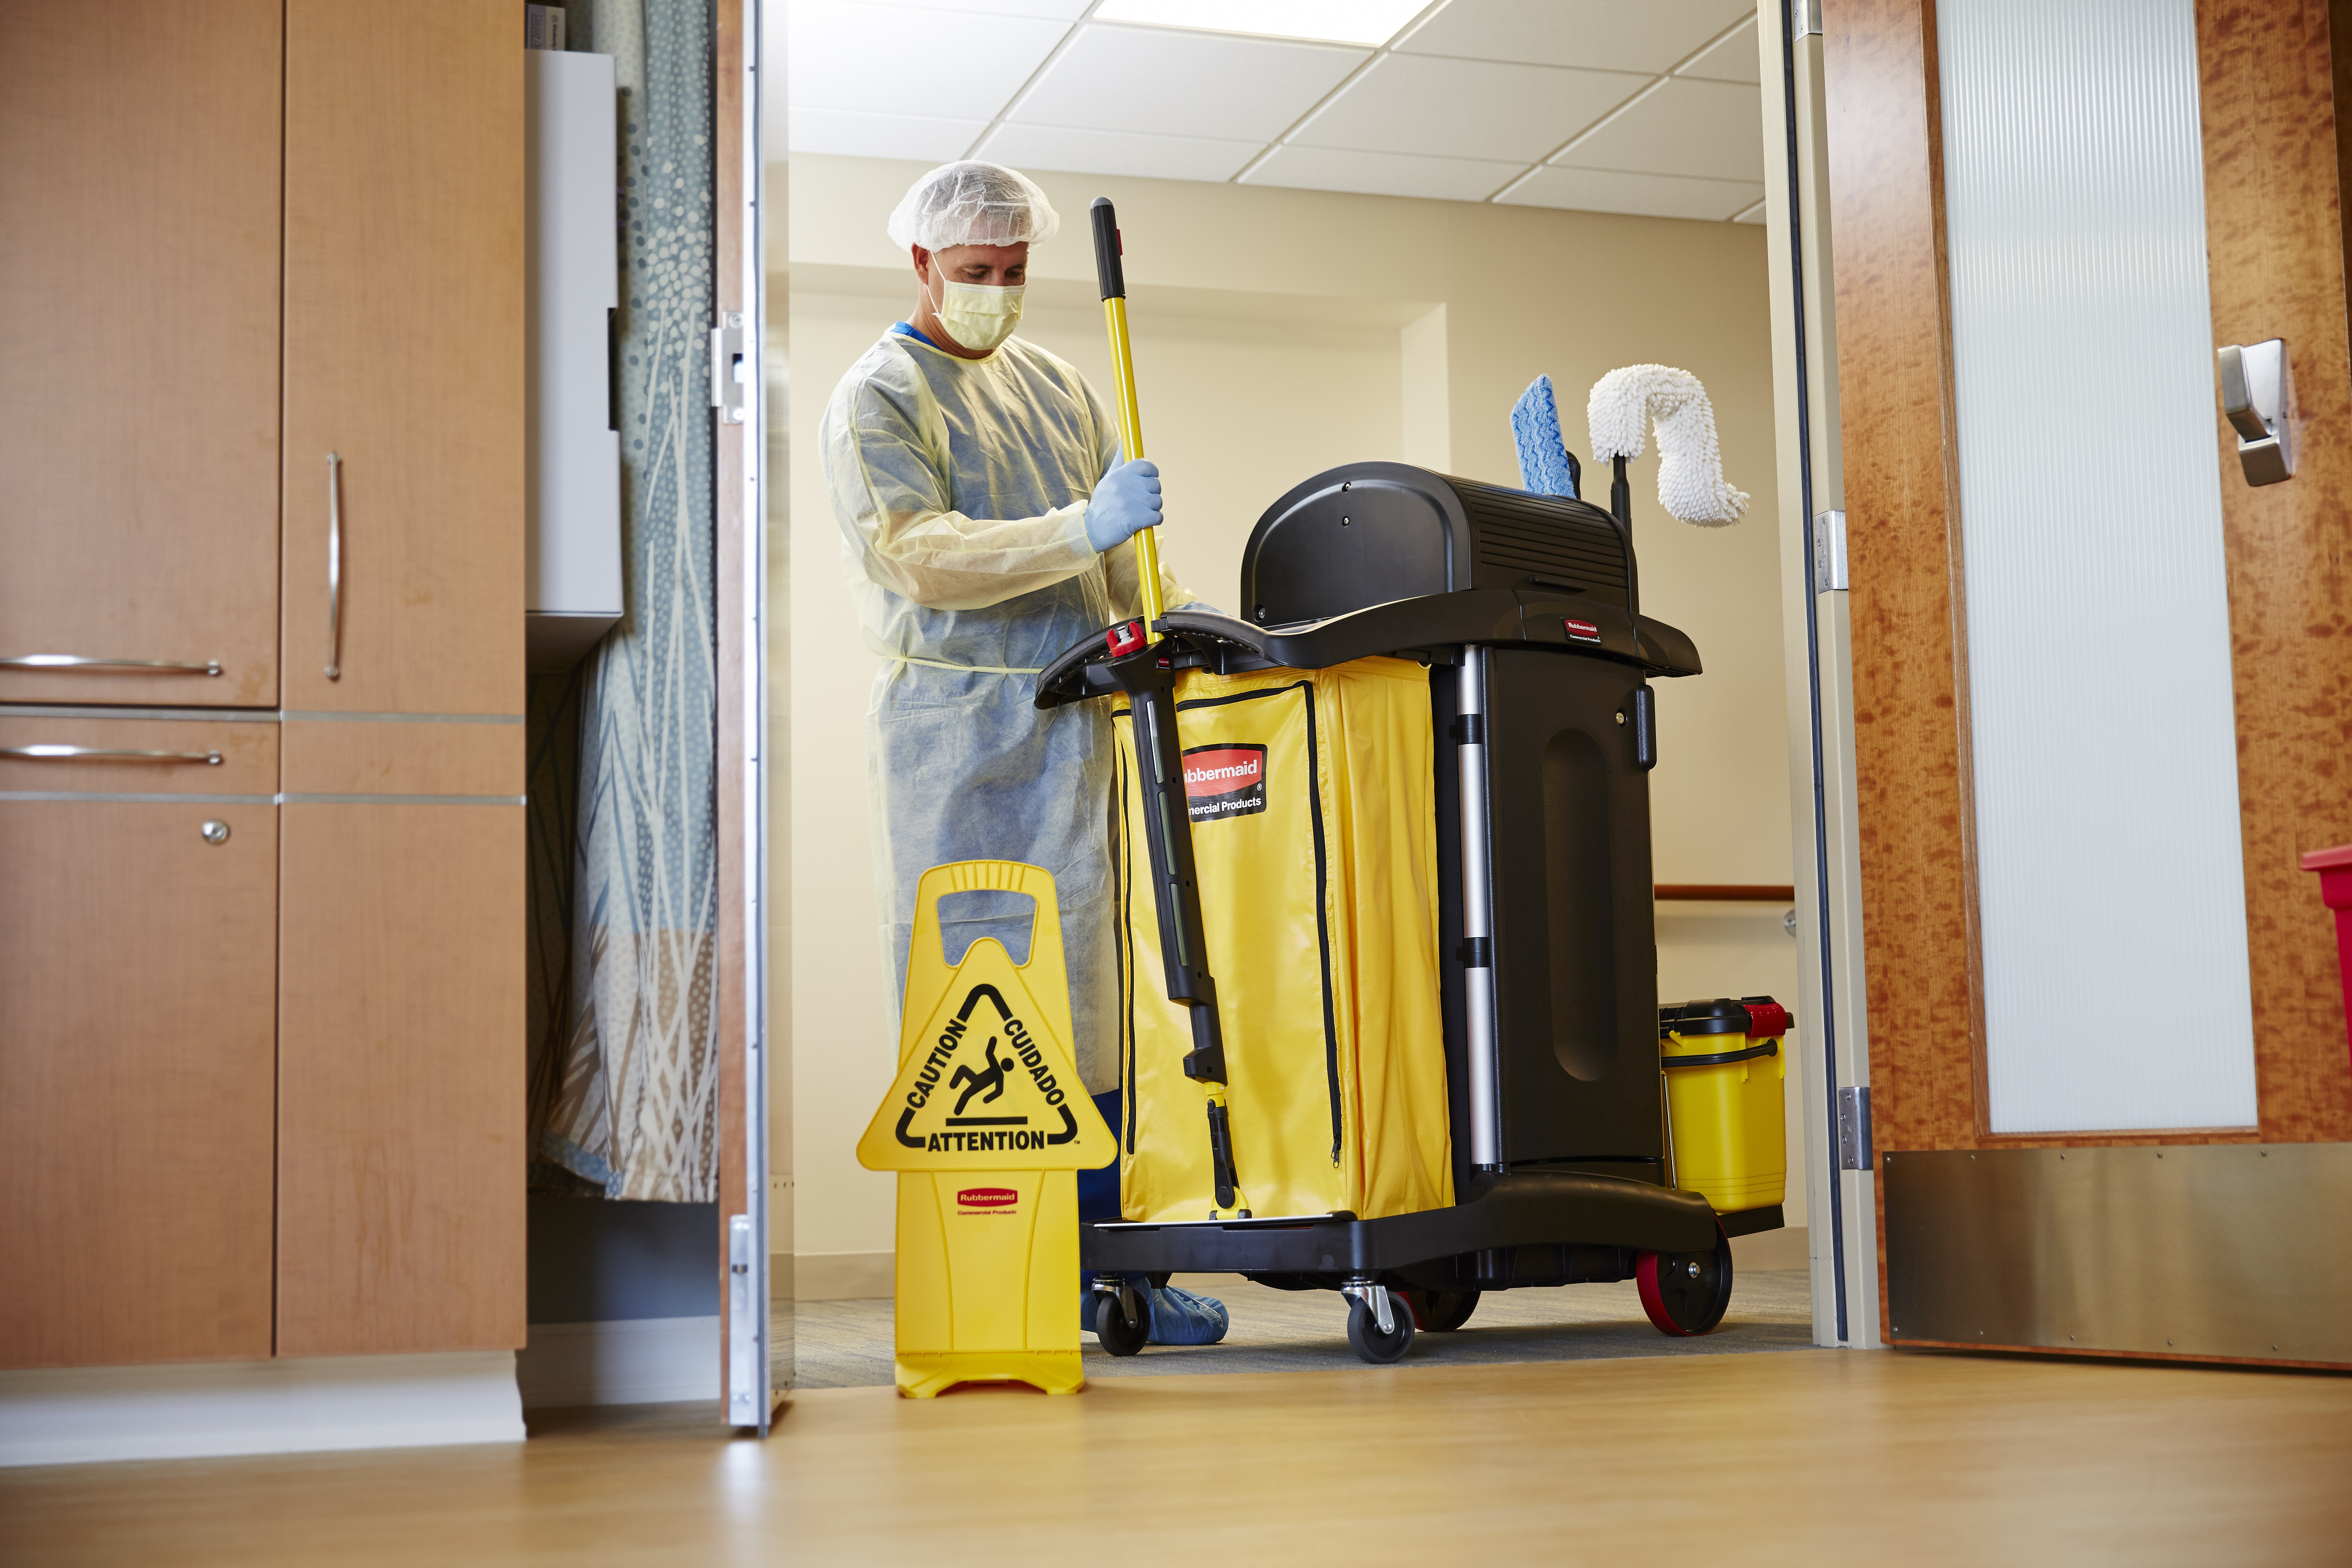 Cleaning in Hospitals (part 4) - Ramblings About Disinfection